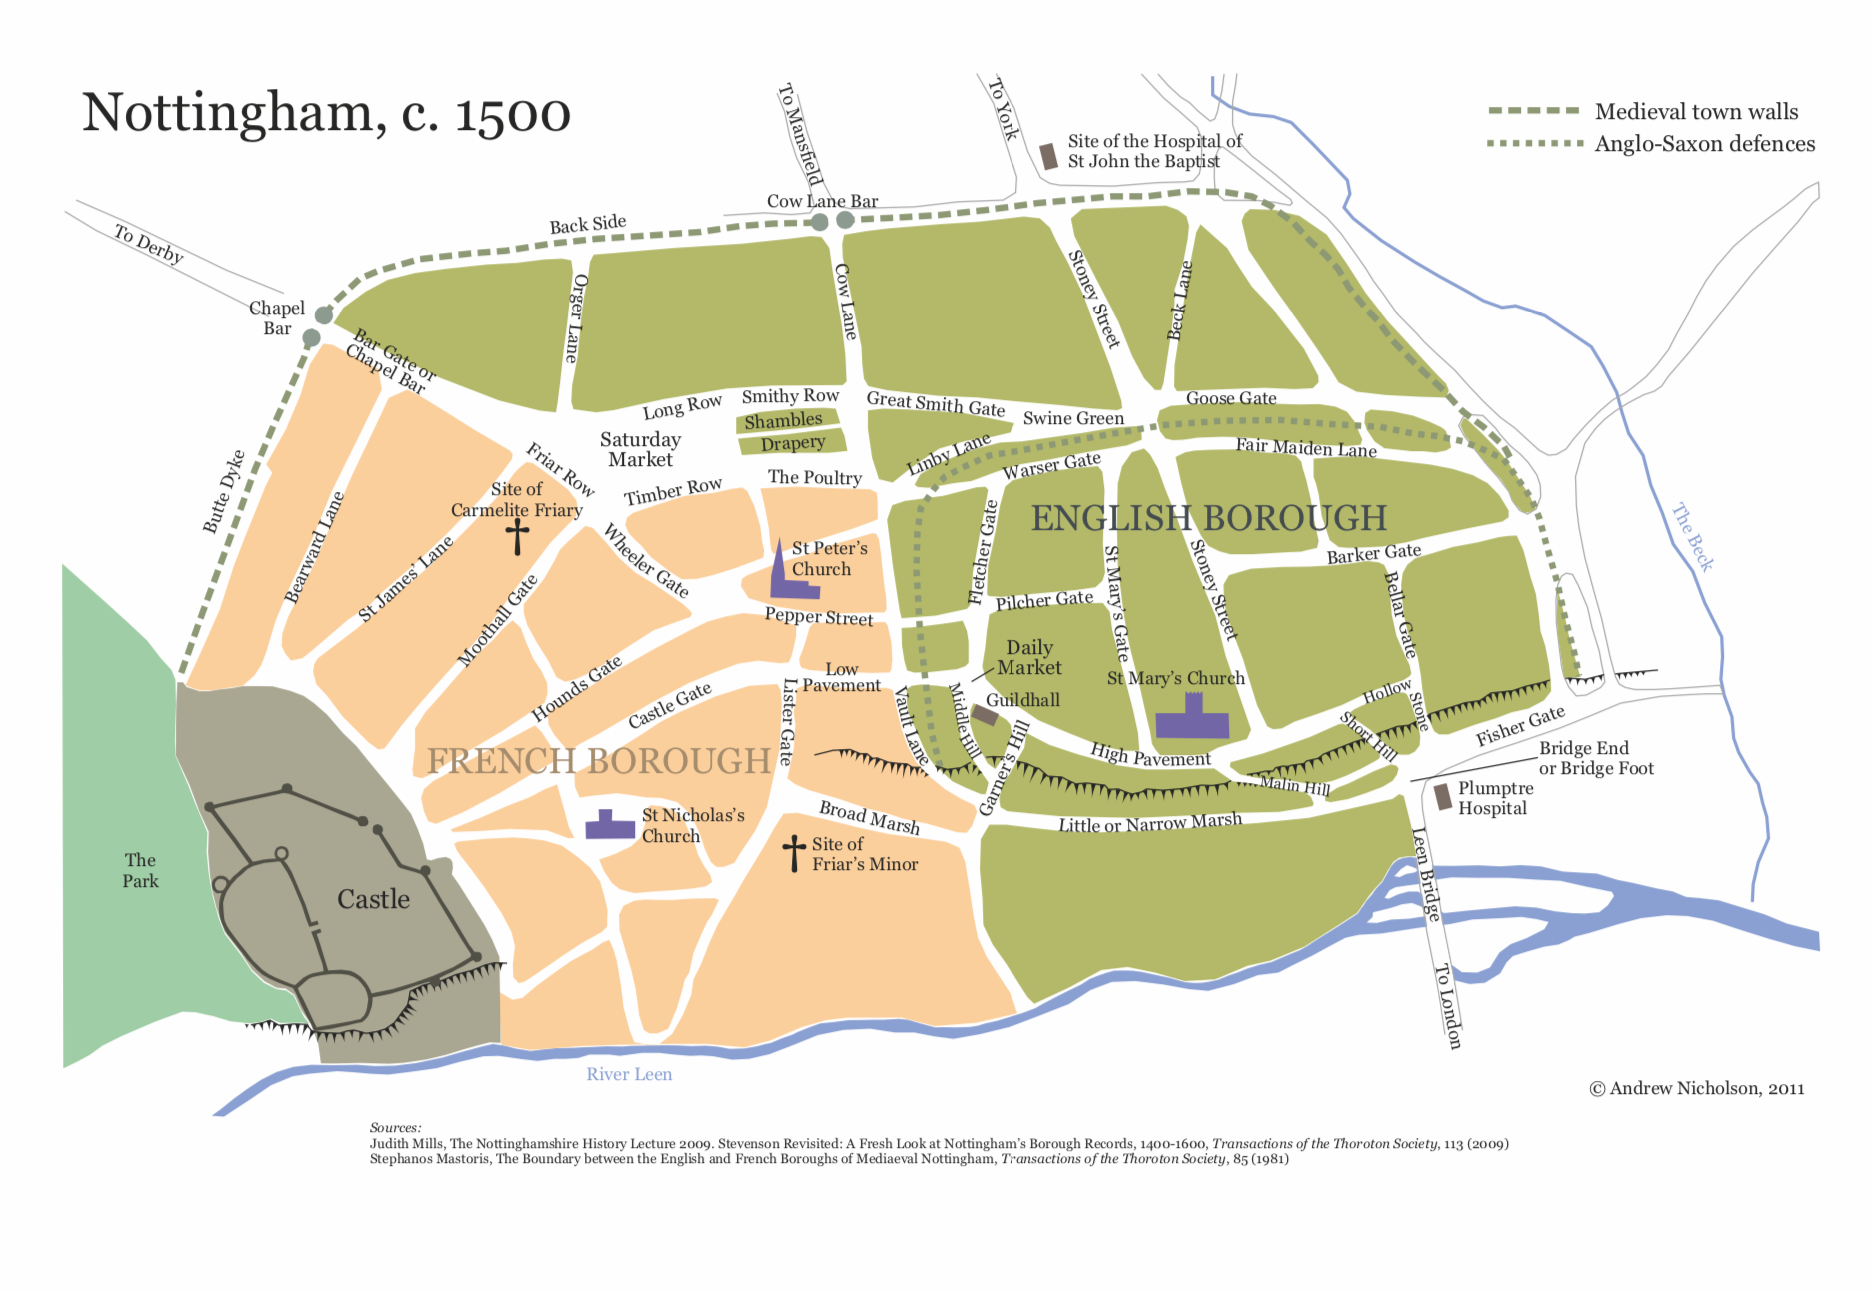 Plan of Nottingham town and castle circa 1500